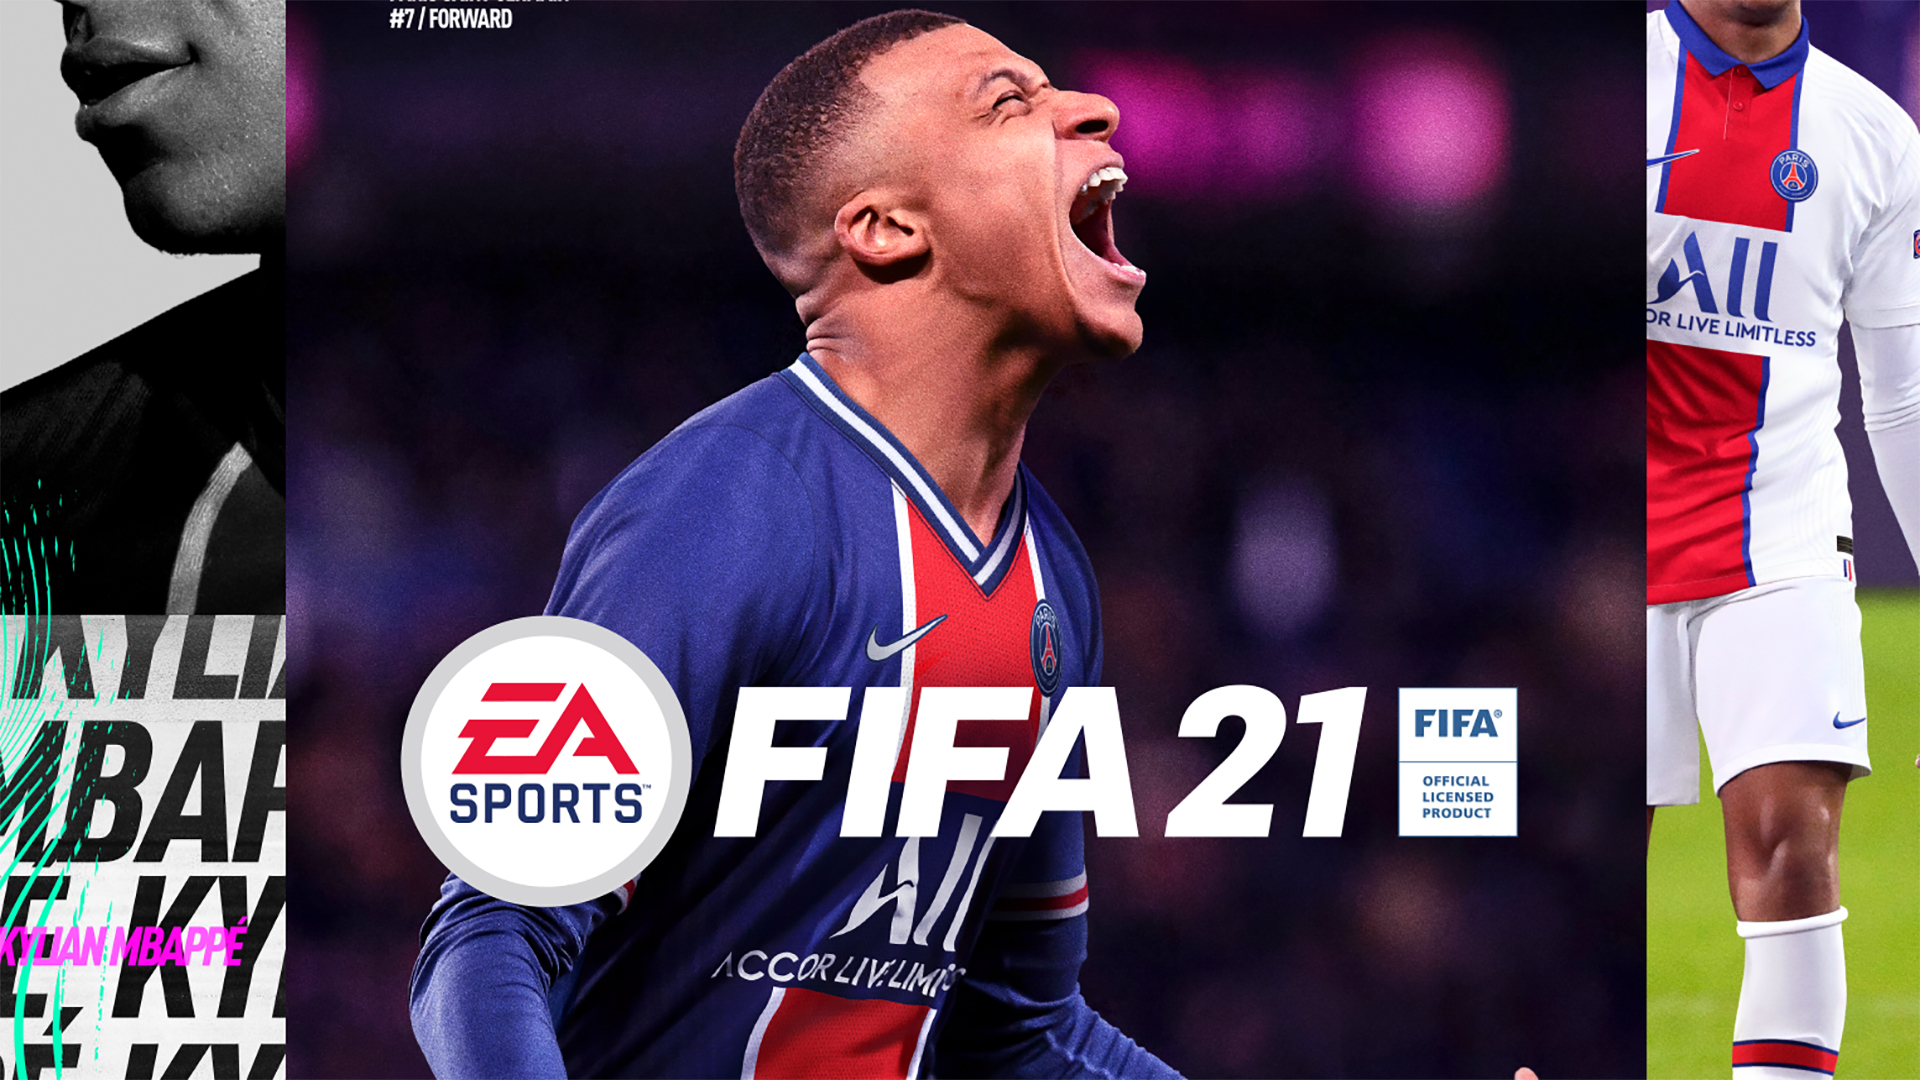 fifa 21 update 1.03 patch notes